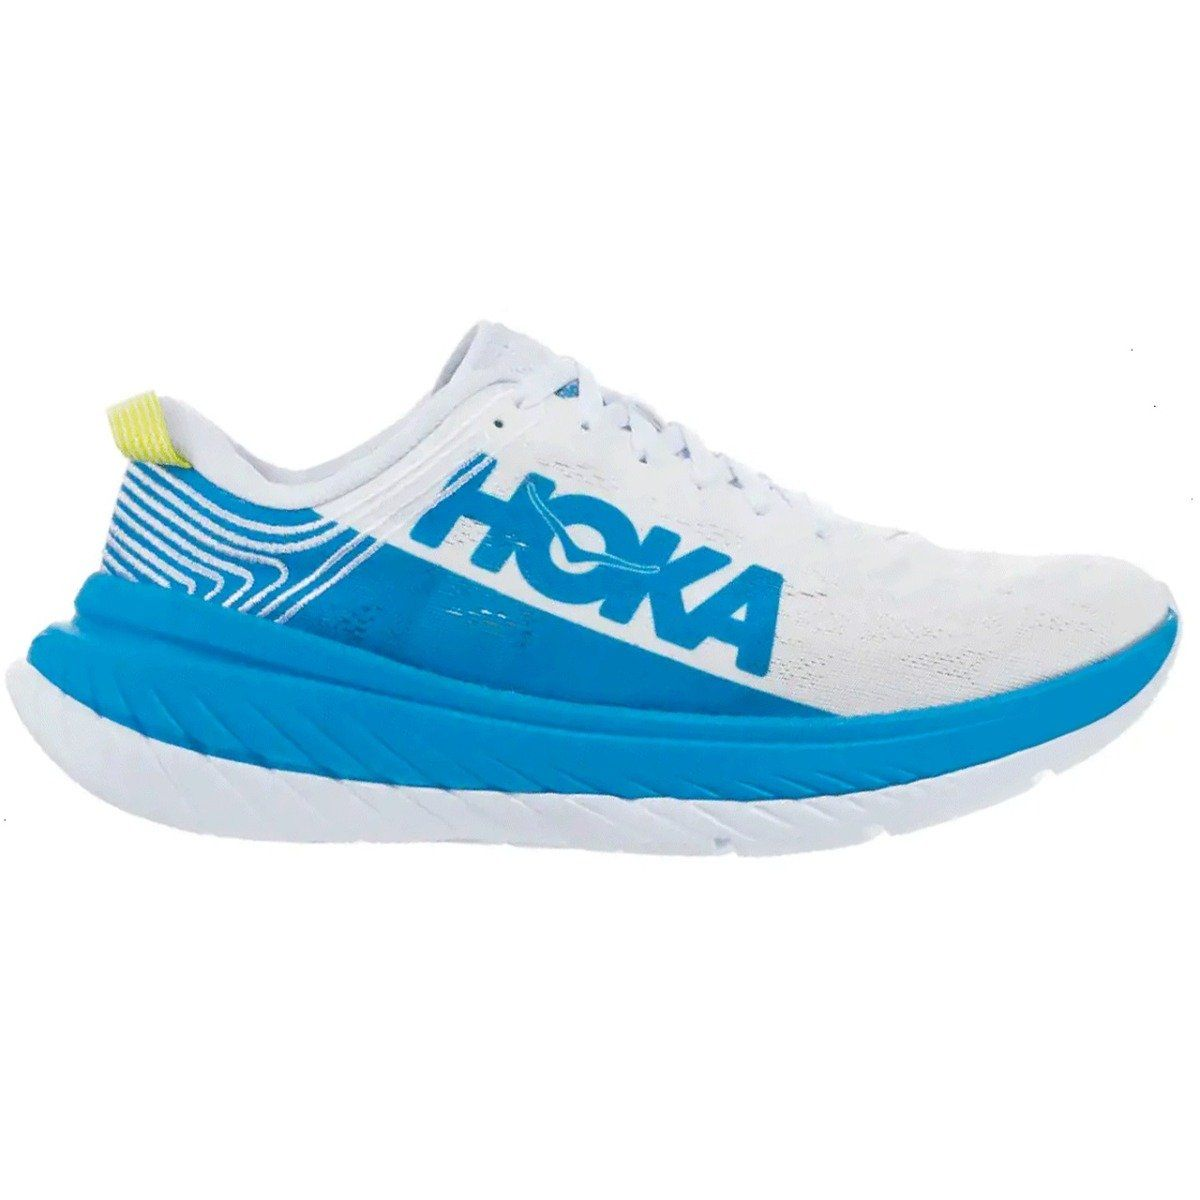 Hoka One One Carbon X herre